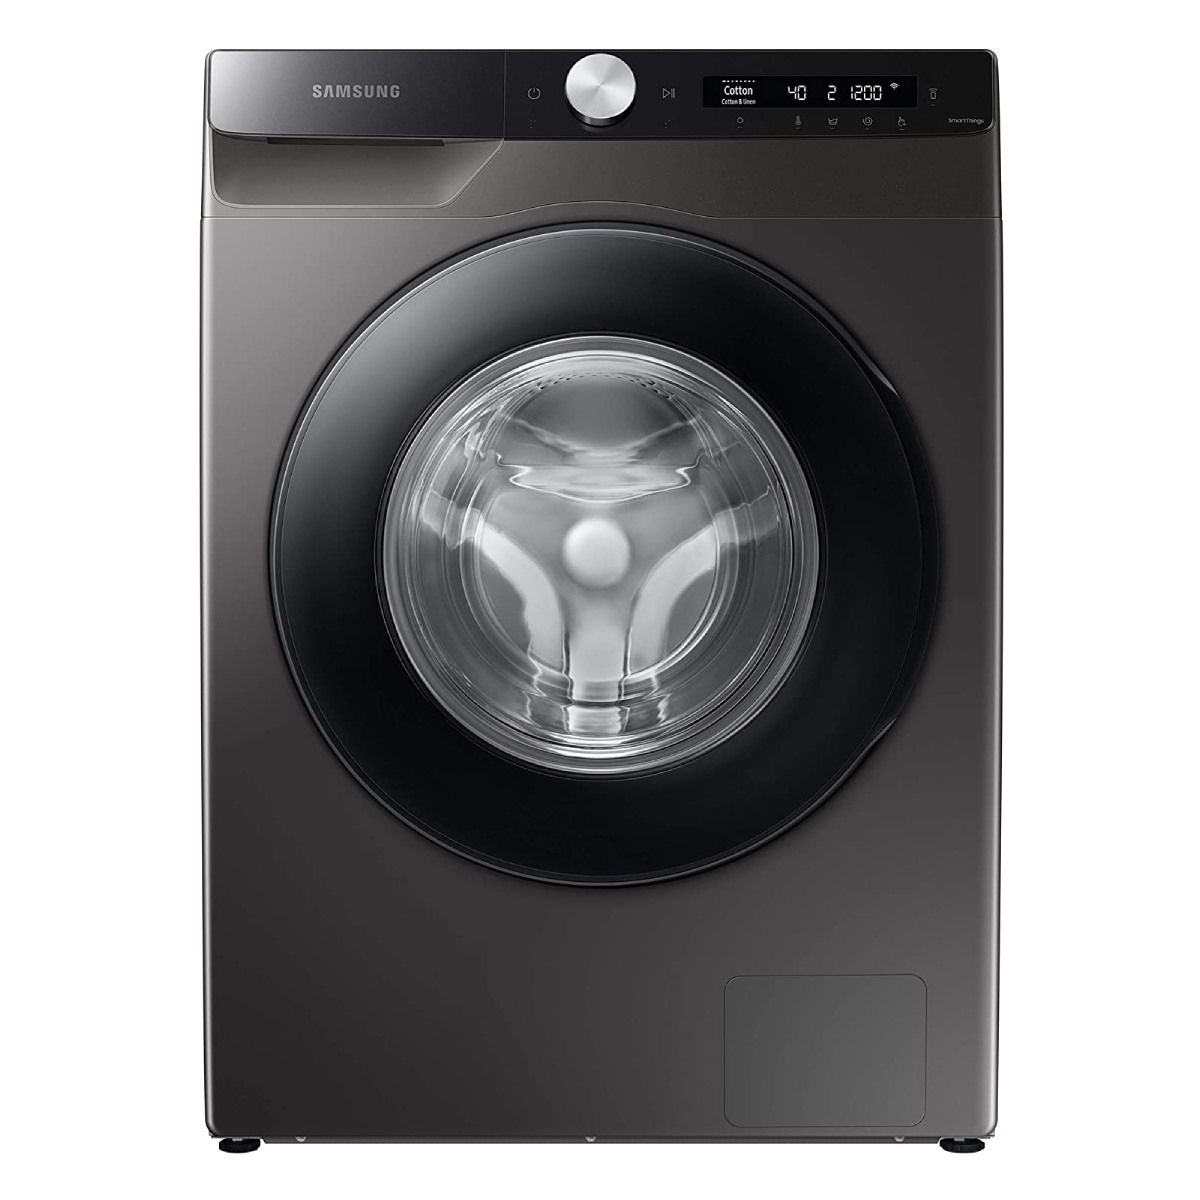 Samsung 7 Kg Wi-Fi Enabled Inverter Fully-Automatic Front Loading Washing Machine (WW70T502DAX)